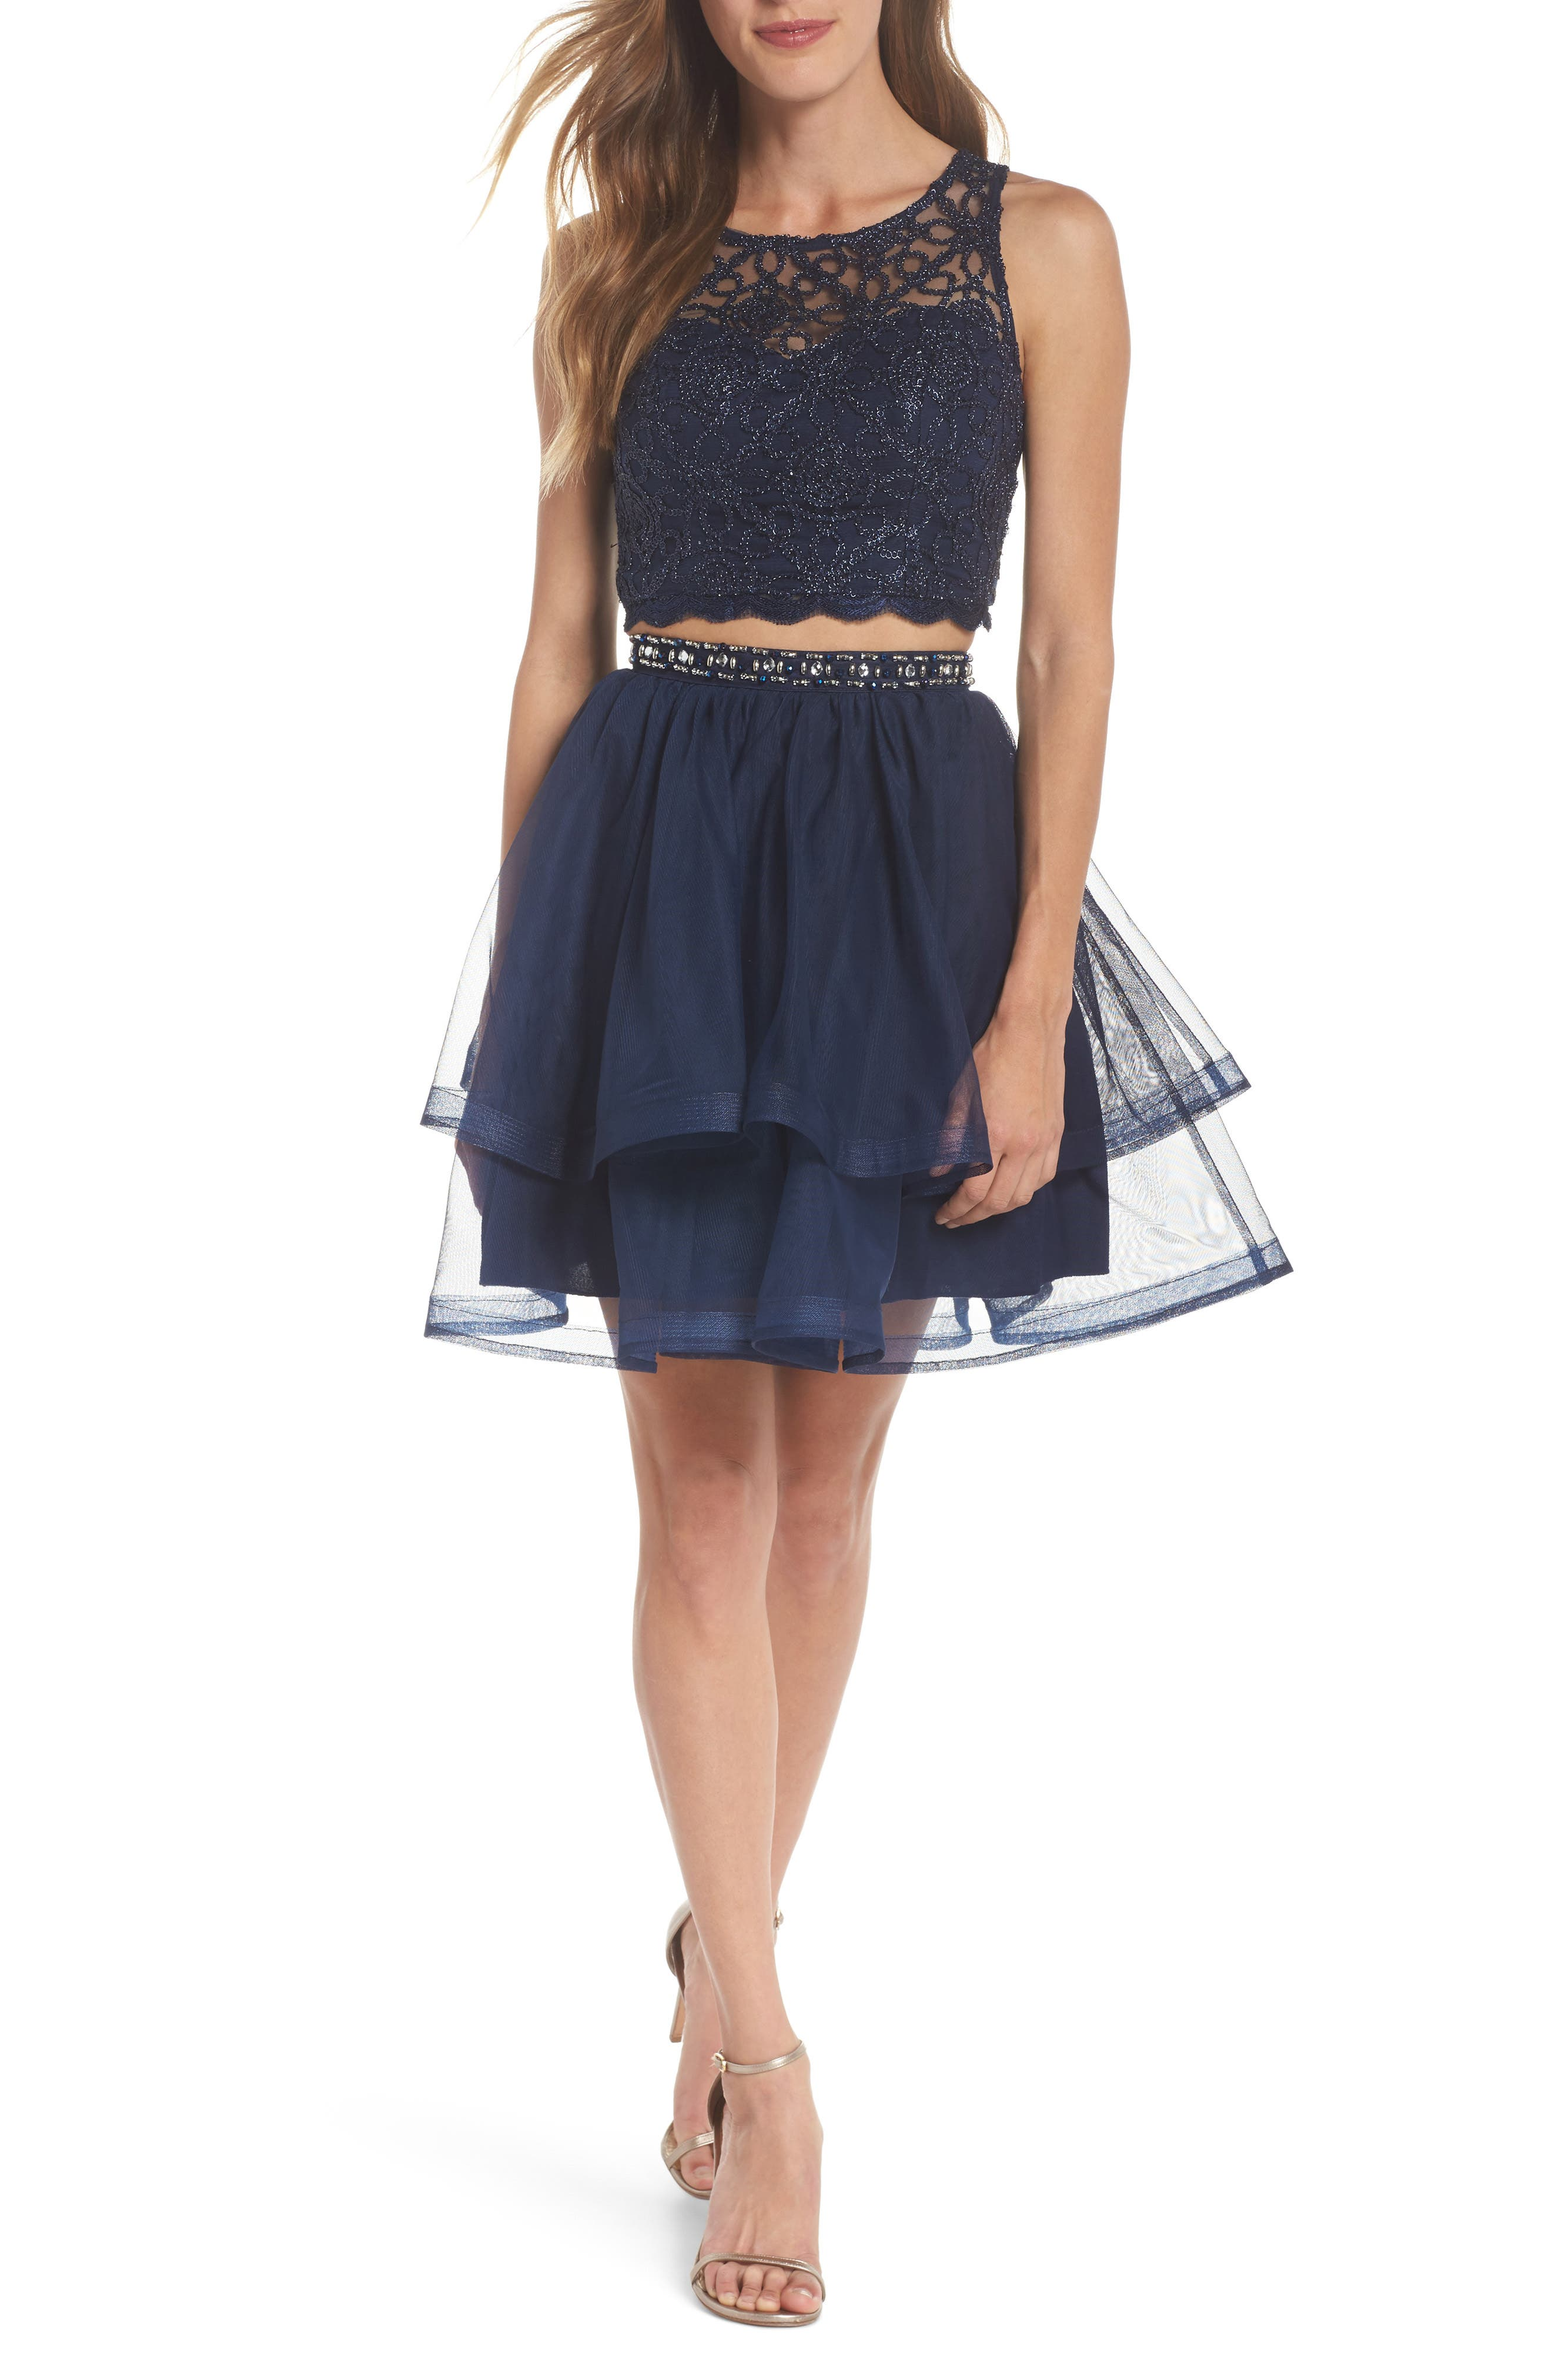 Alternate Image 1 Selected - Sequin Hearts Chain Lace Mesh Two-Piece Dress